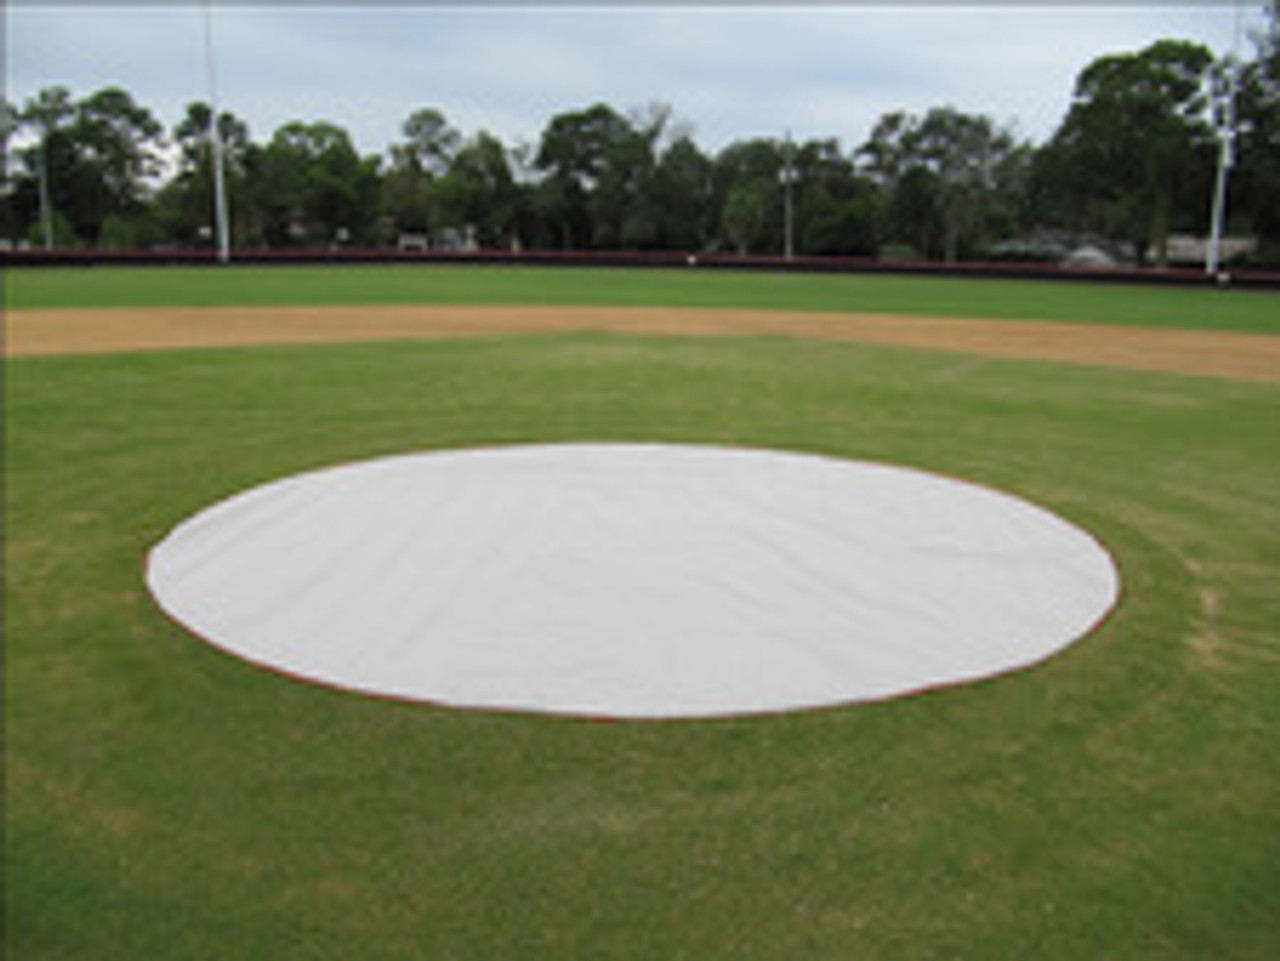 Weighted 6 oz. 10'x10' Square Base Protectors (Set of 3) - Baseball Field Covers